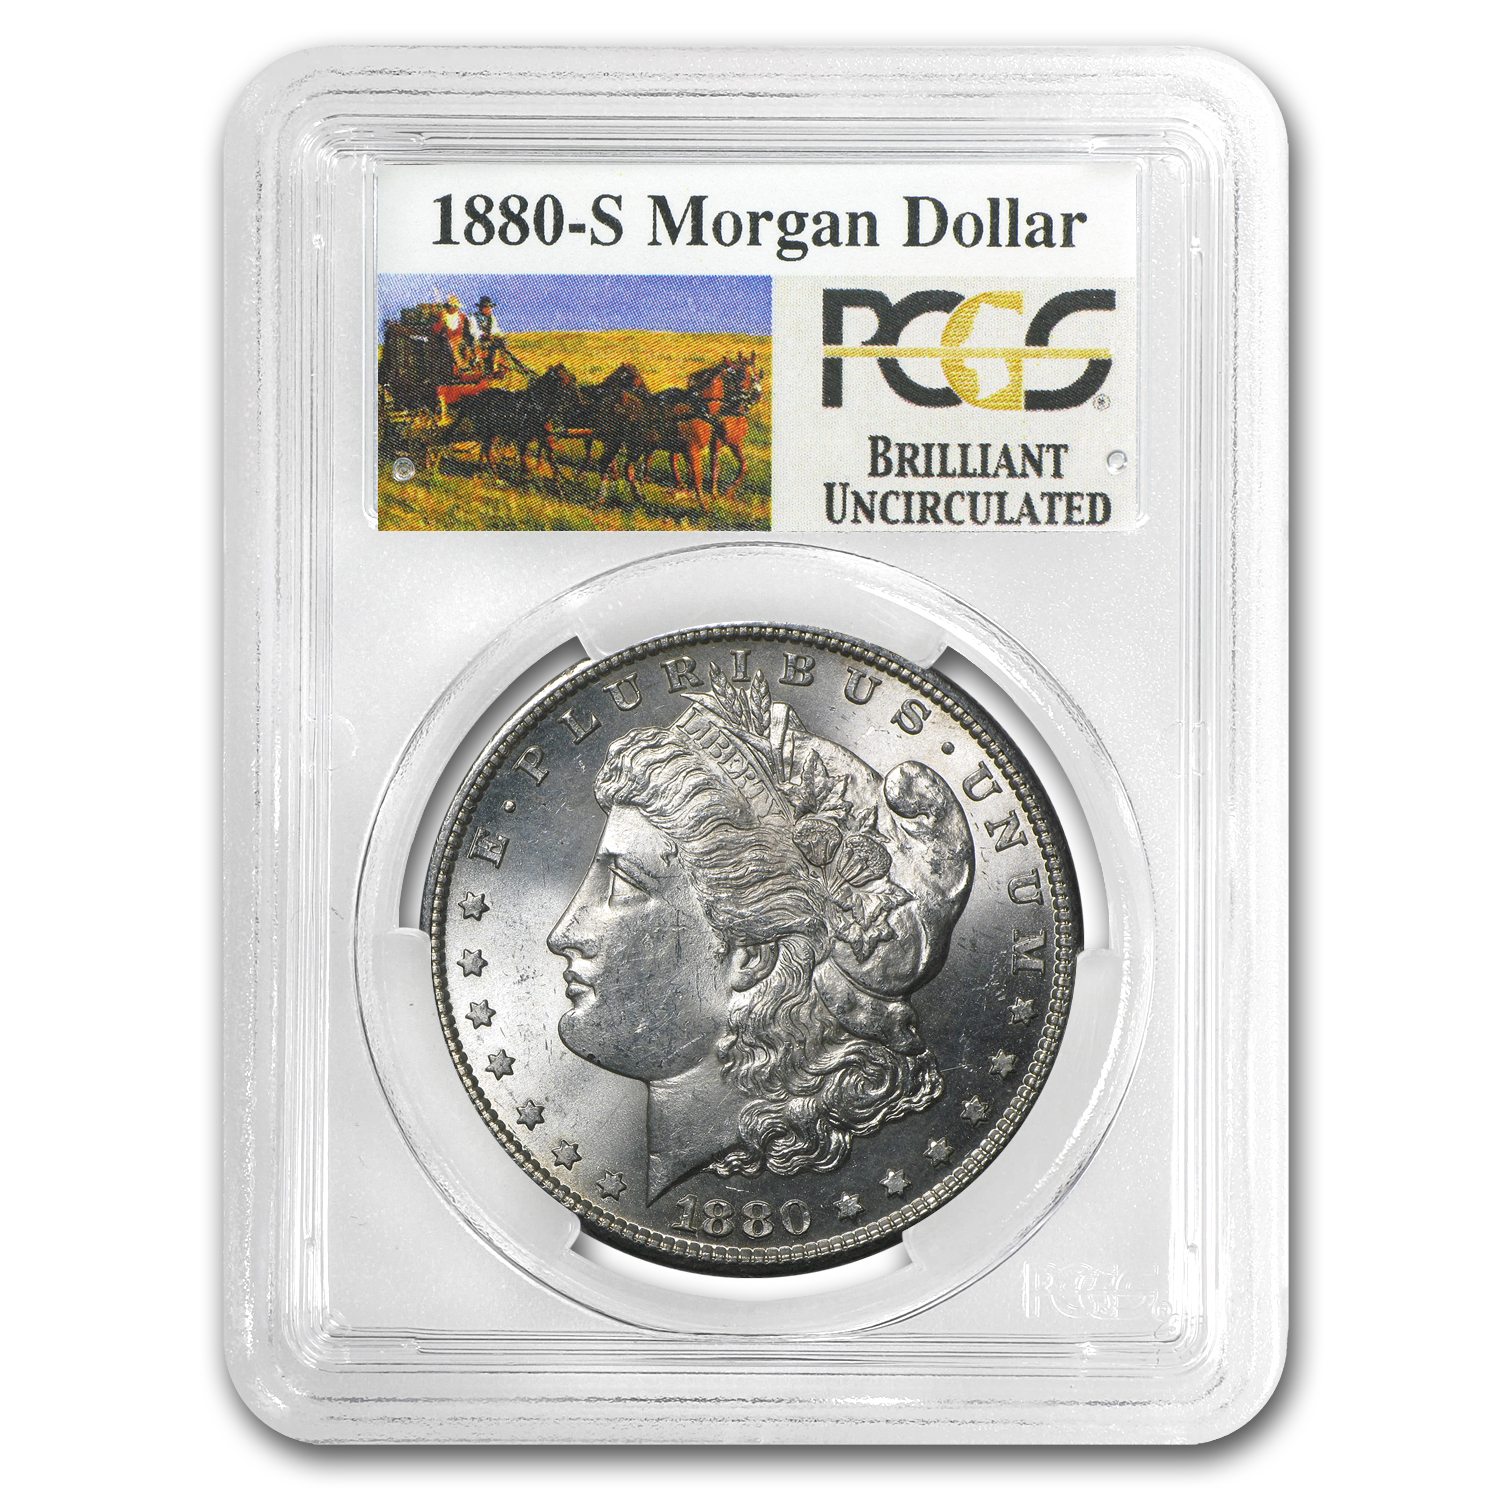 1878-1904 Stage Coach Morgan Dollar BU PCGS